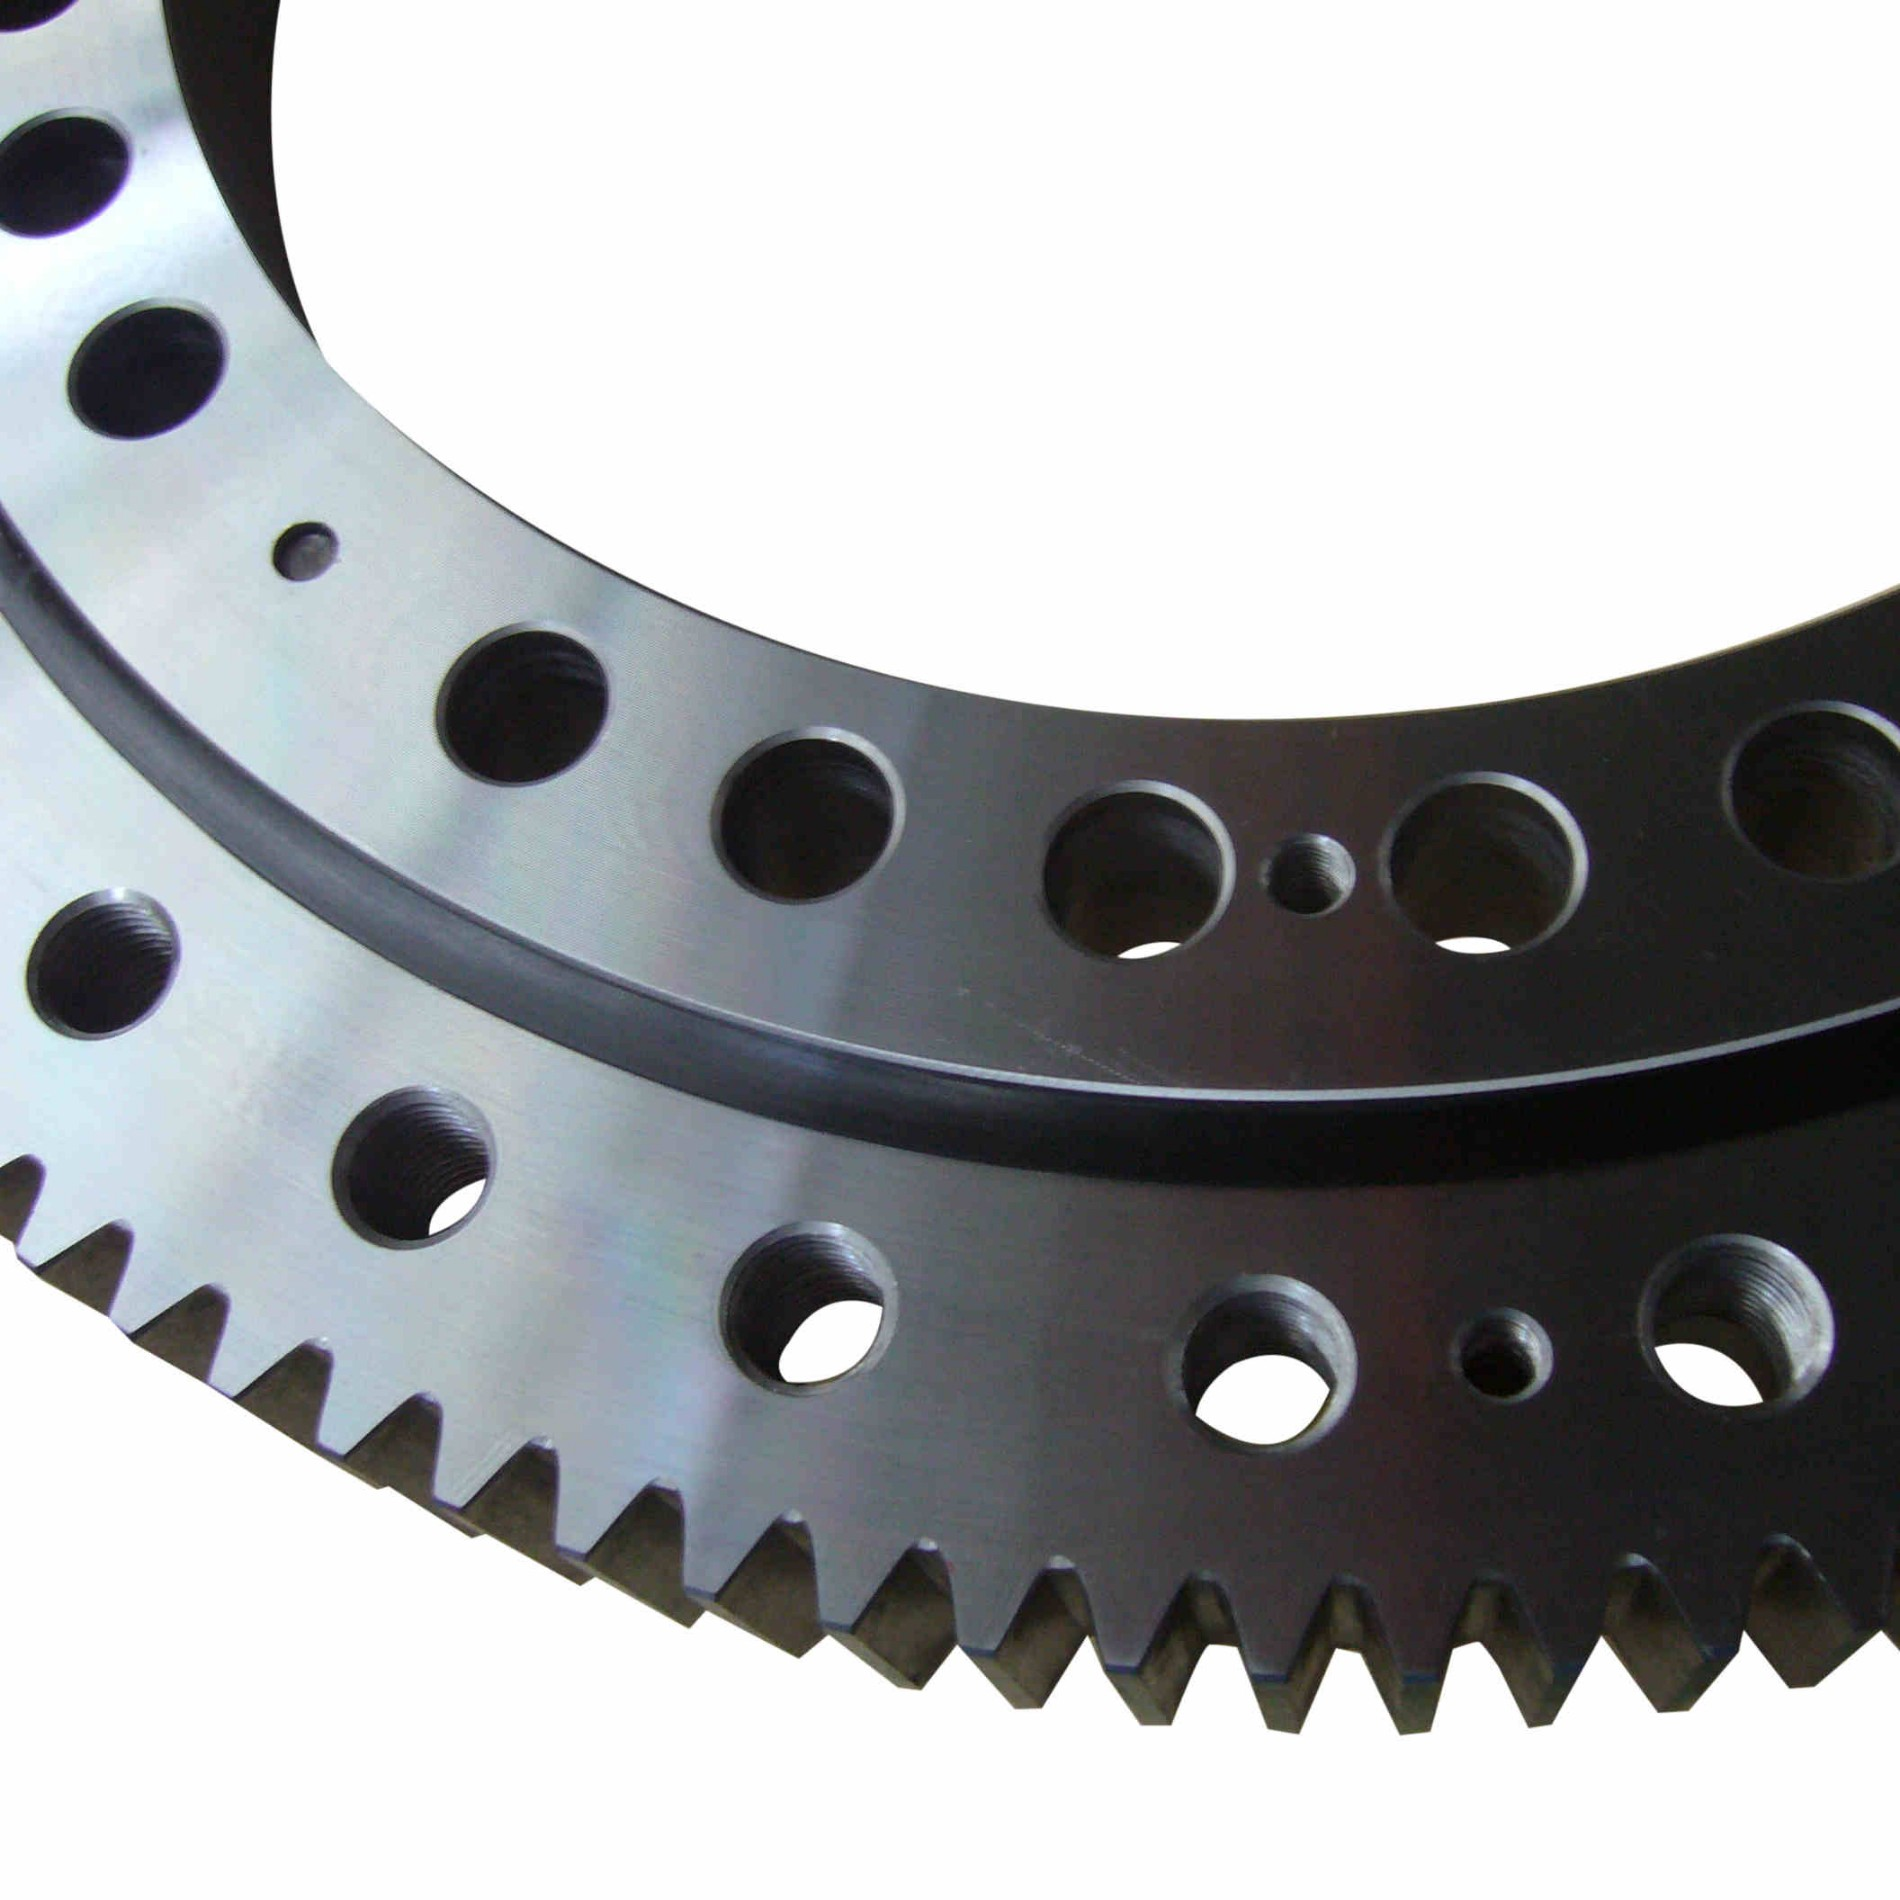 Slewing Bearing Manufacturers For Mobile Crane Manufacturers, Slewing Bearing Manufacturers For Mobile Crane Factory, Supply Slewing Bearing Manufacturers For Mobile Crane